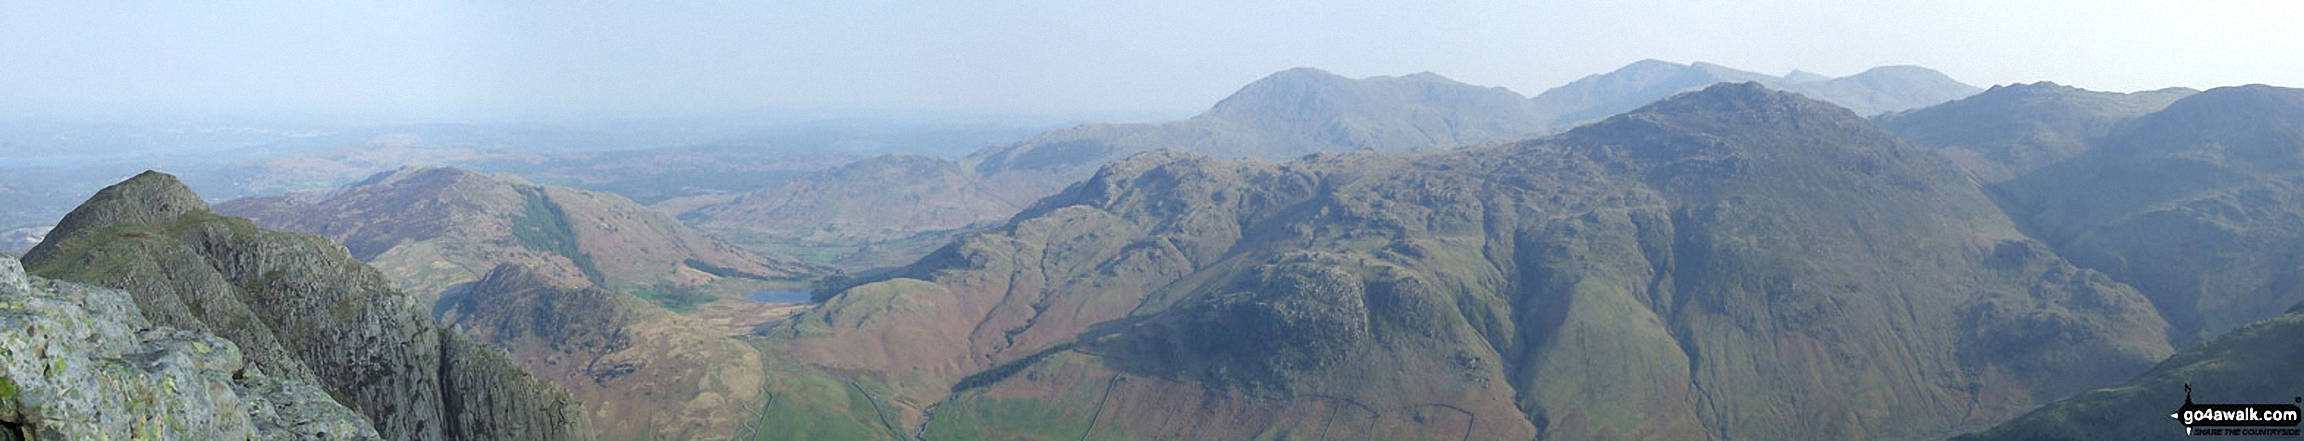 *Loft Crag (foreground far left), Lingmoor, Blea Tarn, Pike of Blisco (Pike o' Blisco), Cold Pike and Crinkle Crags (featuring Crinkle Crags (South Top), Crinkle Crags (Long Top) and Gunson Knott) (mid-distance left to right) and Wetherlam, Great Carrs and Grey Friar (far-distance centre to right)  from the summit of Pike of Stickle (Langdale Pikes)